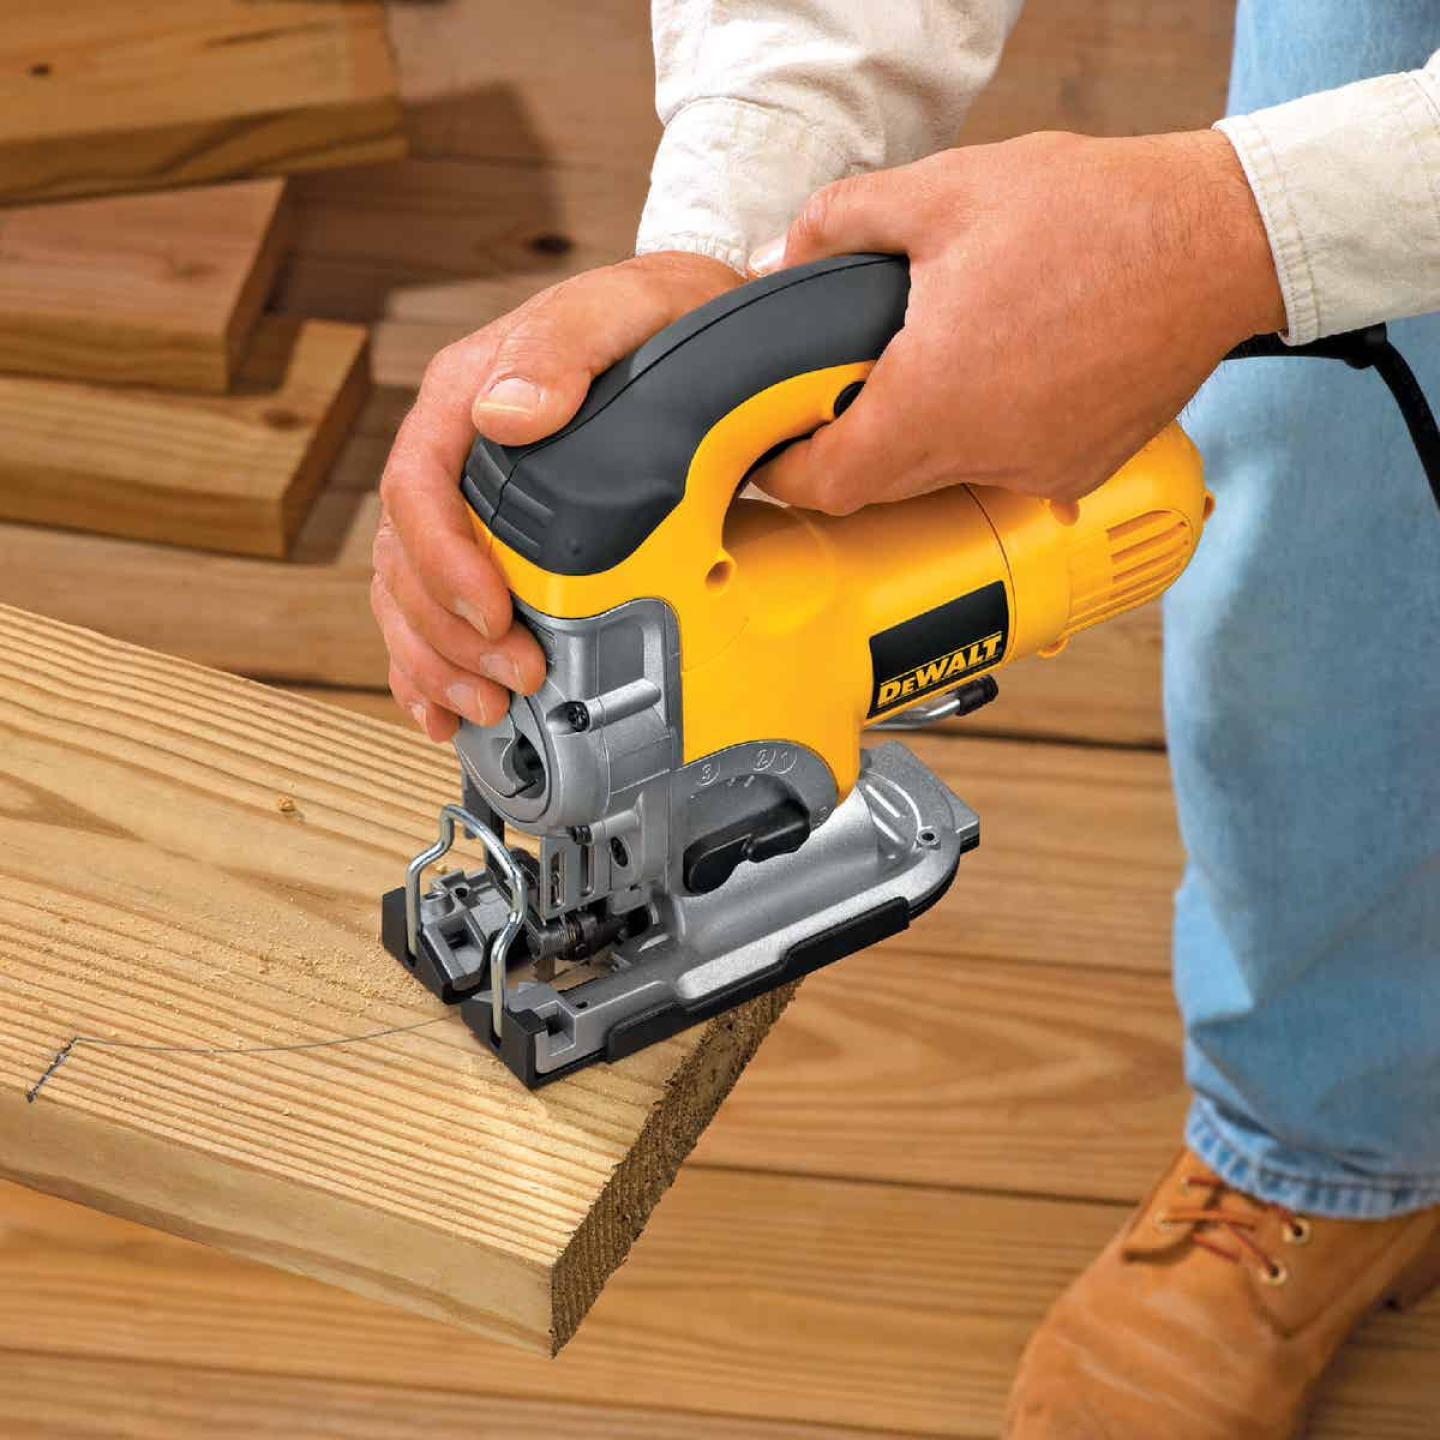 DeWalt 6.5A 4-Position 500-3100 SPM Jig Saw Kit Image 2